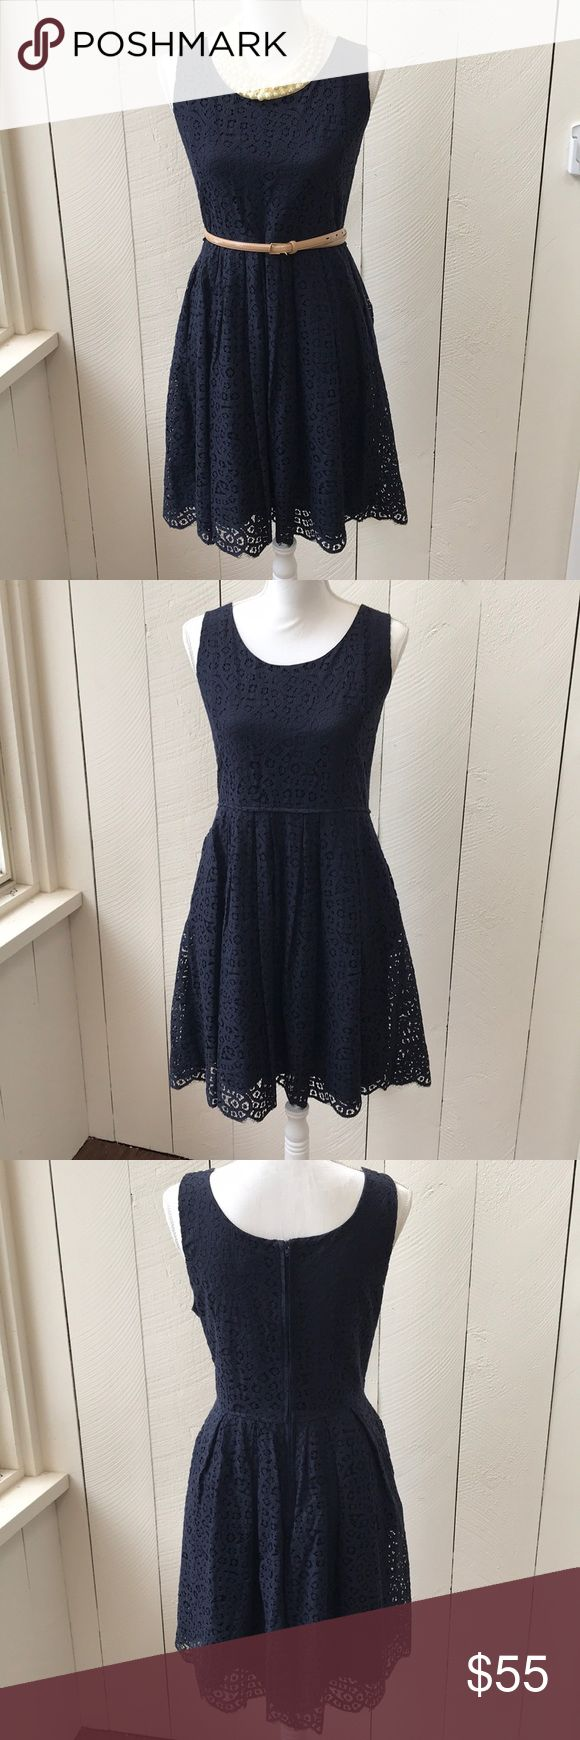 Navy Blue JCrew Lace Dress Size 14 Navy Blue Lacy JCrew Dress.  With Pockets!  True to size.  Gently worn condition with no signs of wear.  Can be dressed down for work or up for your next special occasion.  *Dress only for sale, no accessories included* J. Crew Dresses